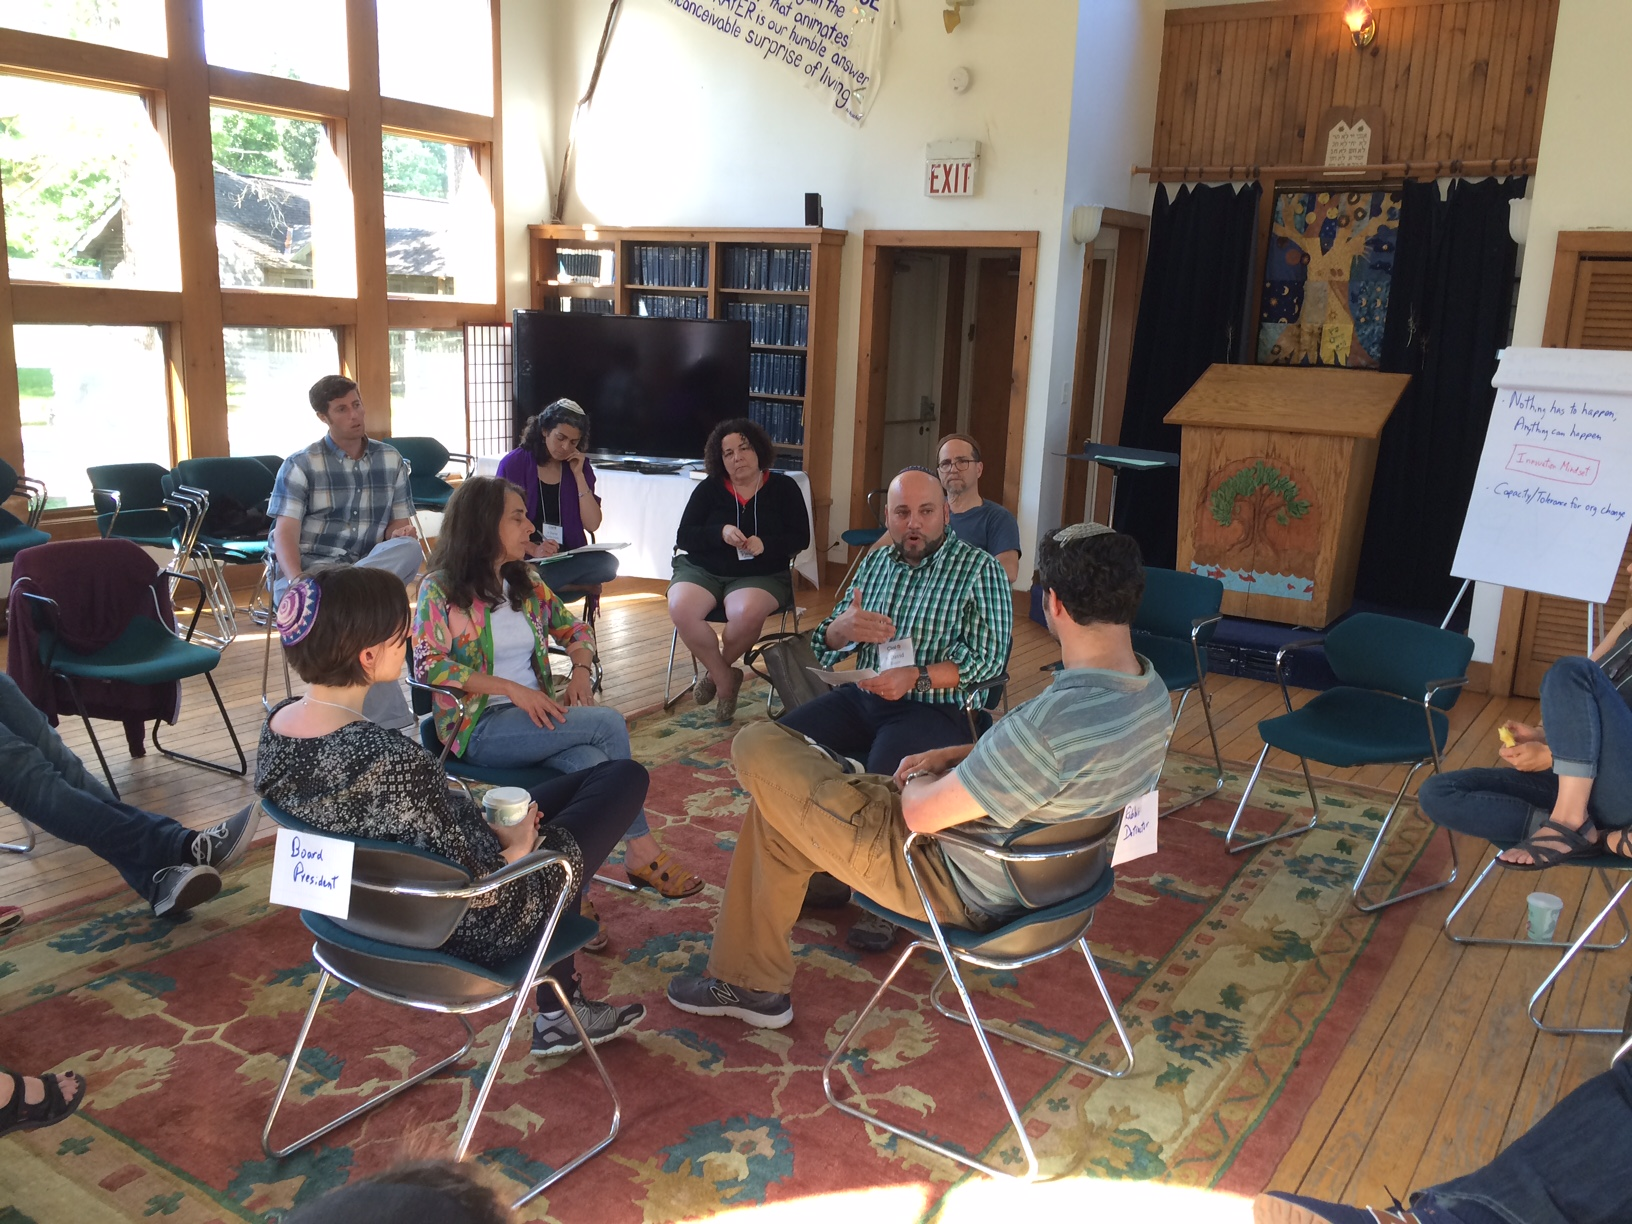 CLI fellows having a discussion while seated in a circle